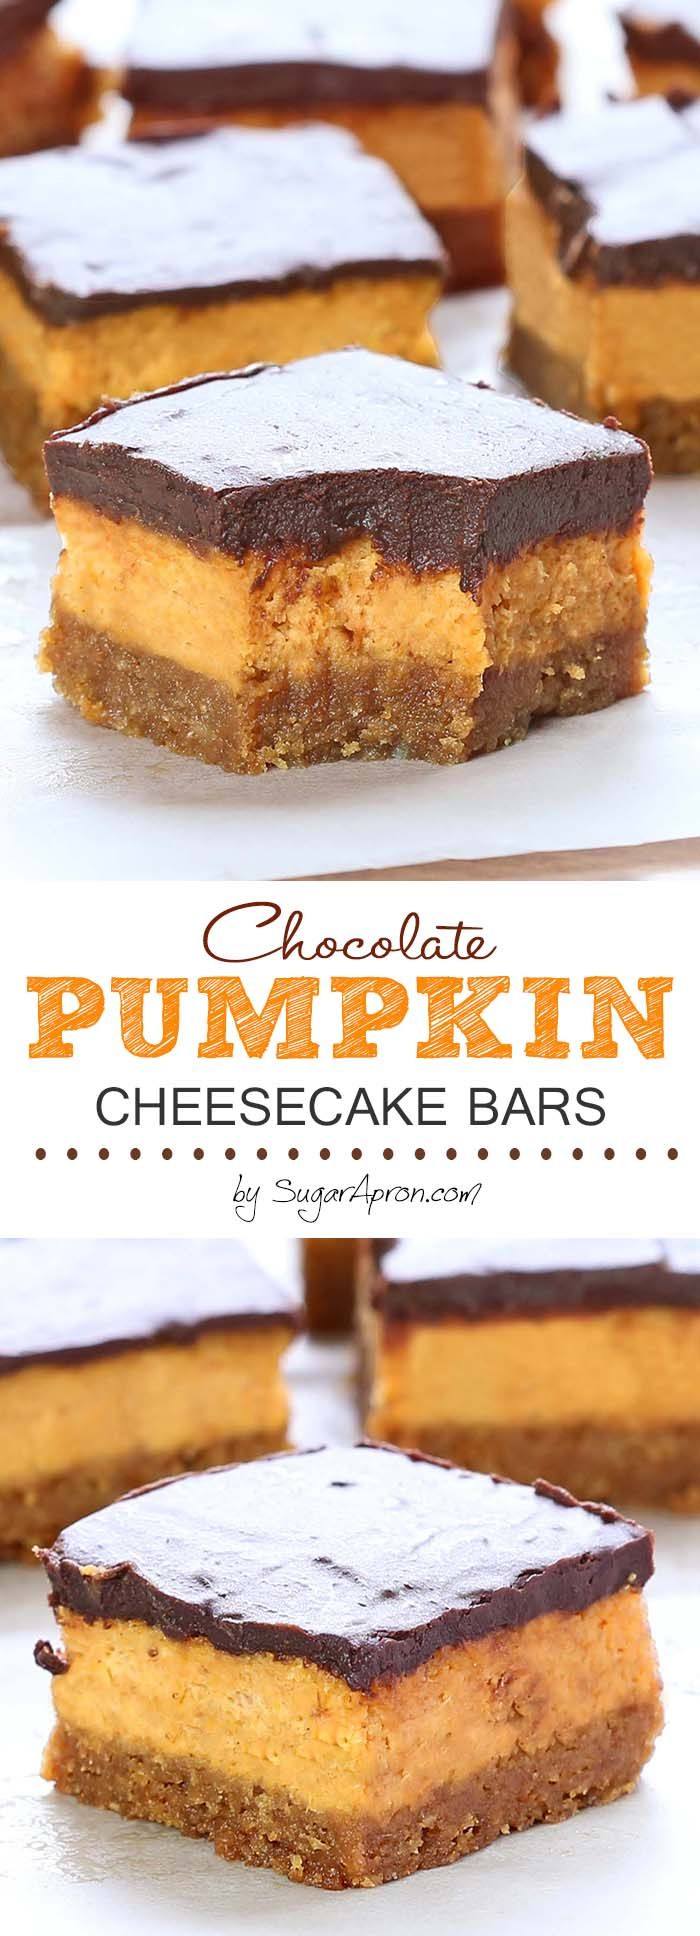 These bars are creamy, chocolate-ly, packed with pumpkin and cream cheese…